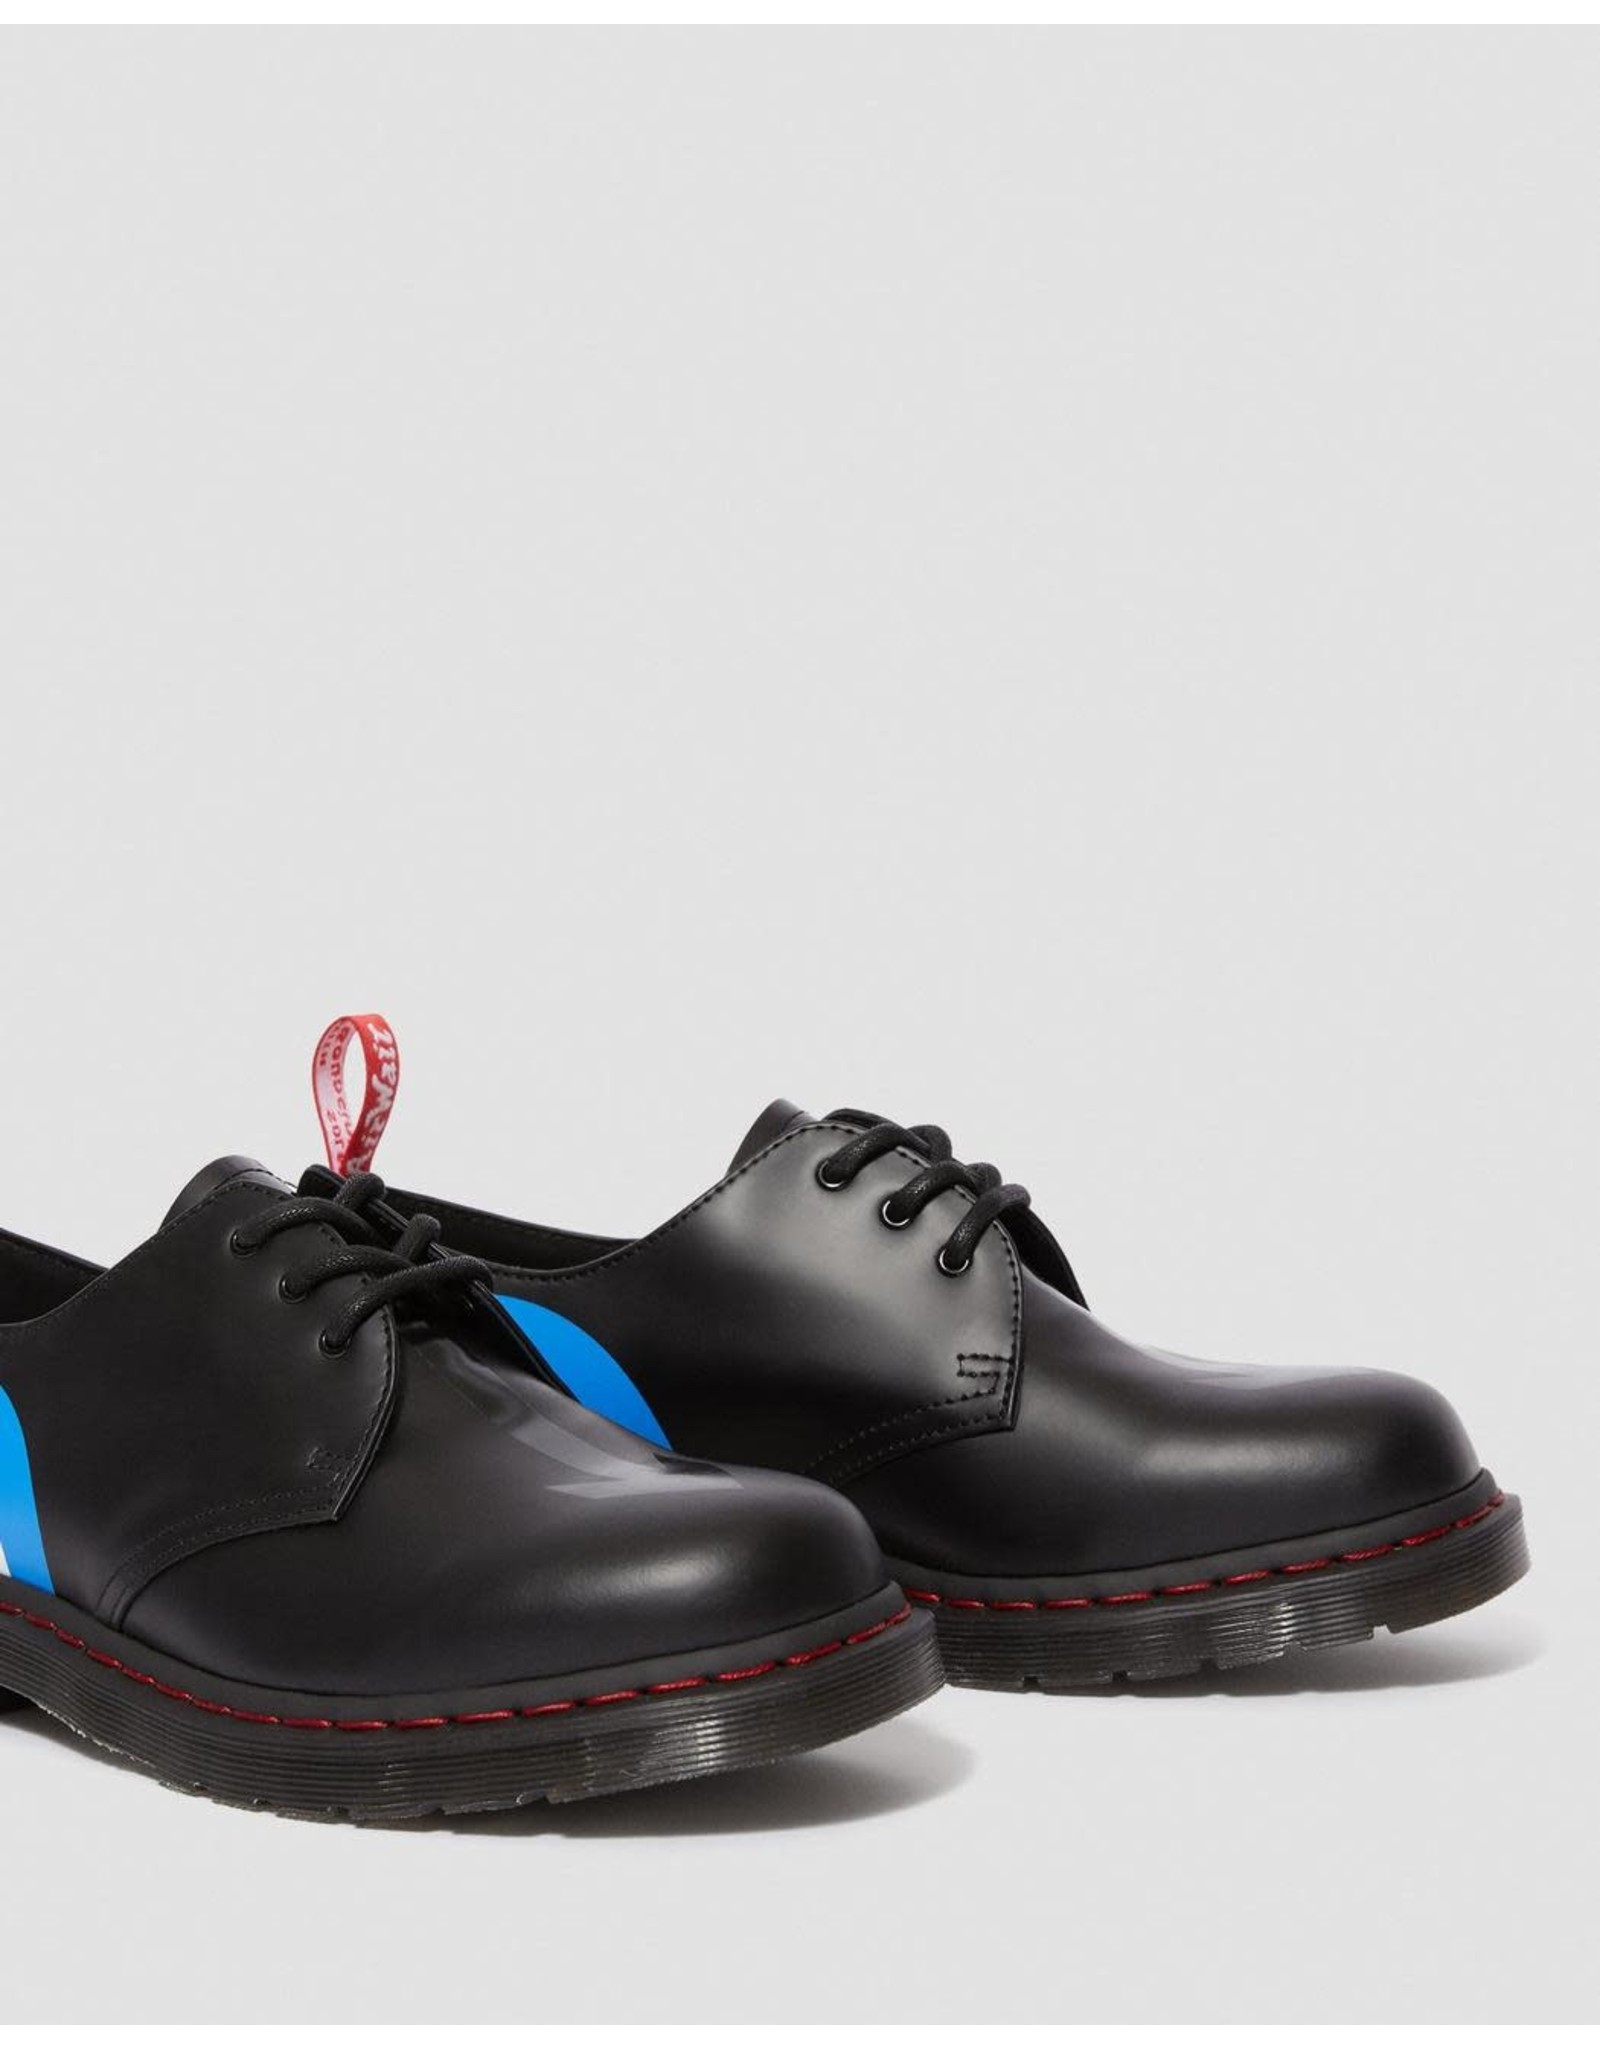 DR. MARTENS 1461 WHO BLACK SMOOTH 301WHO-R25269001